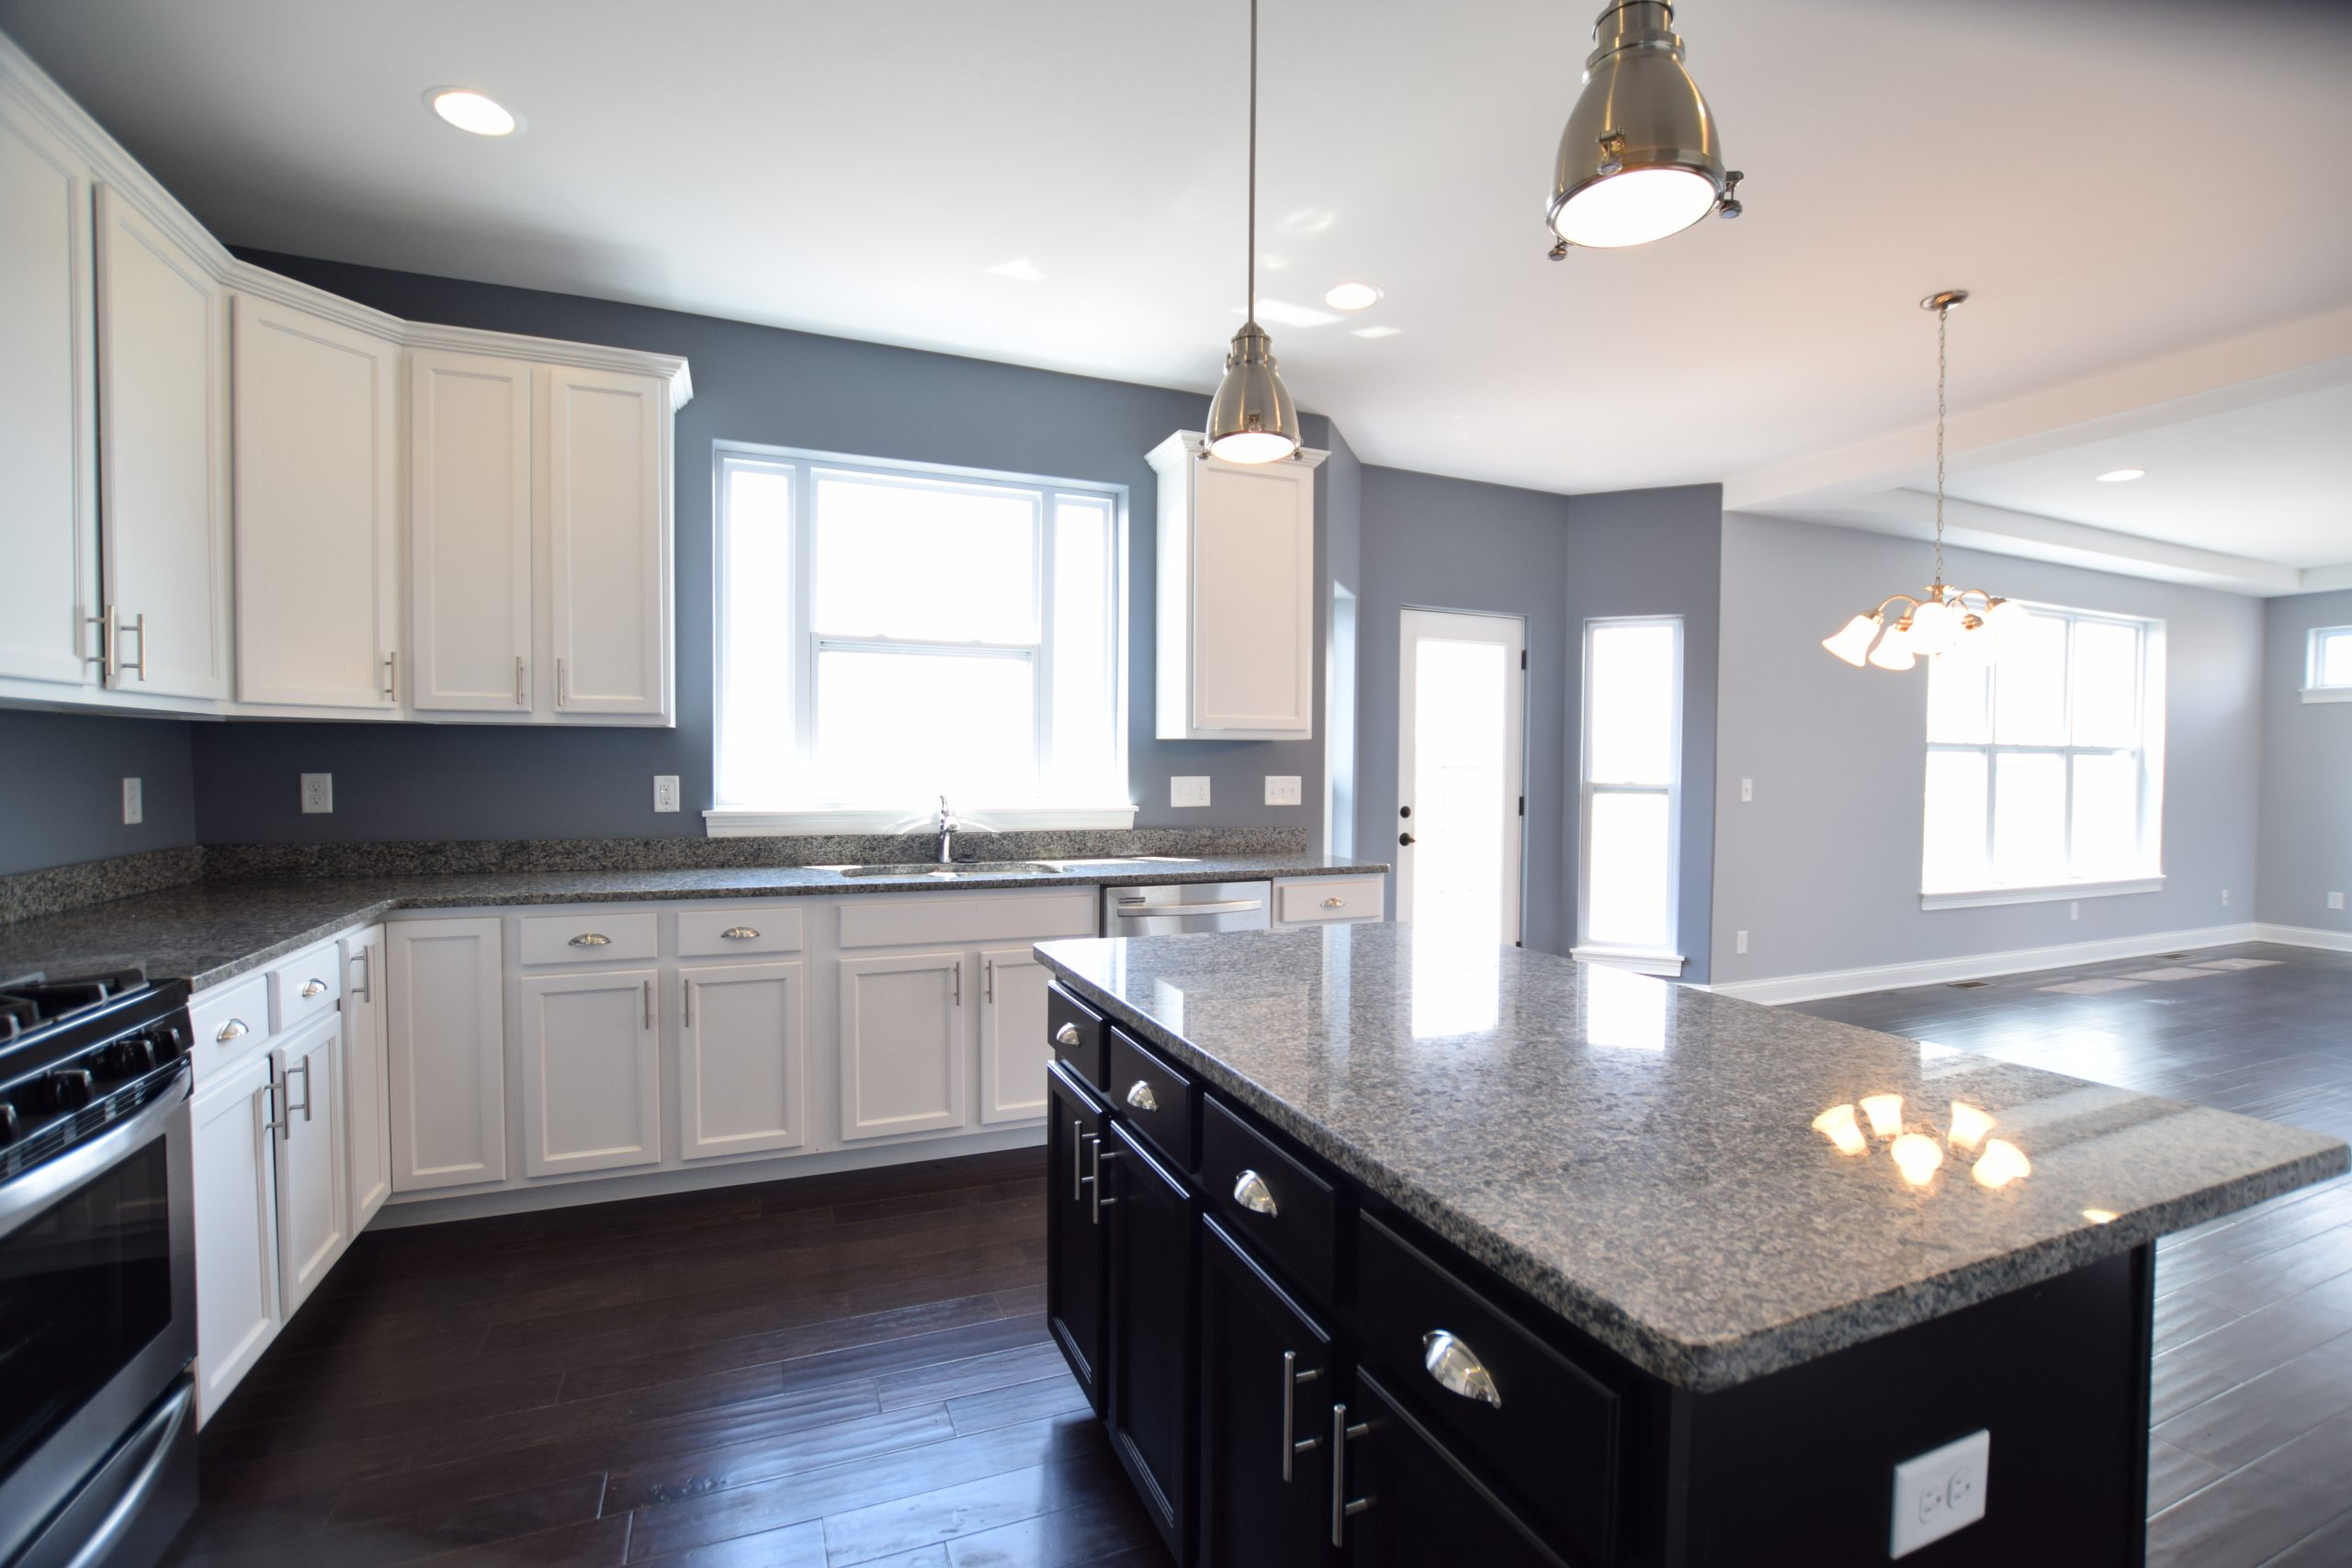 Kitchen with white and black cabinets